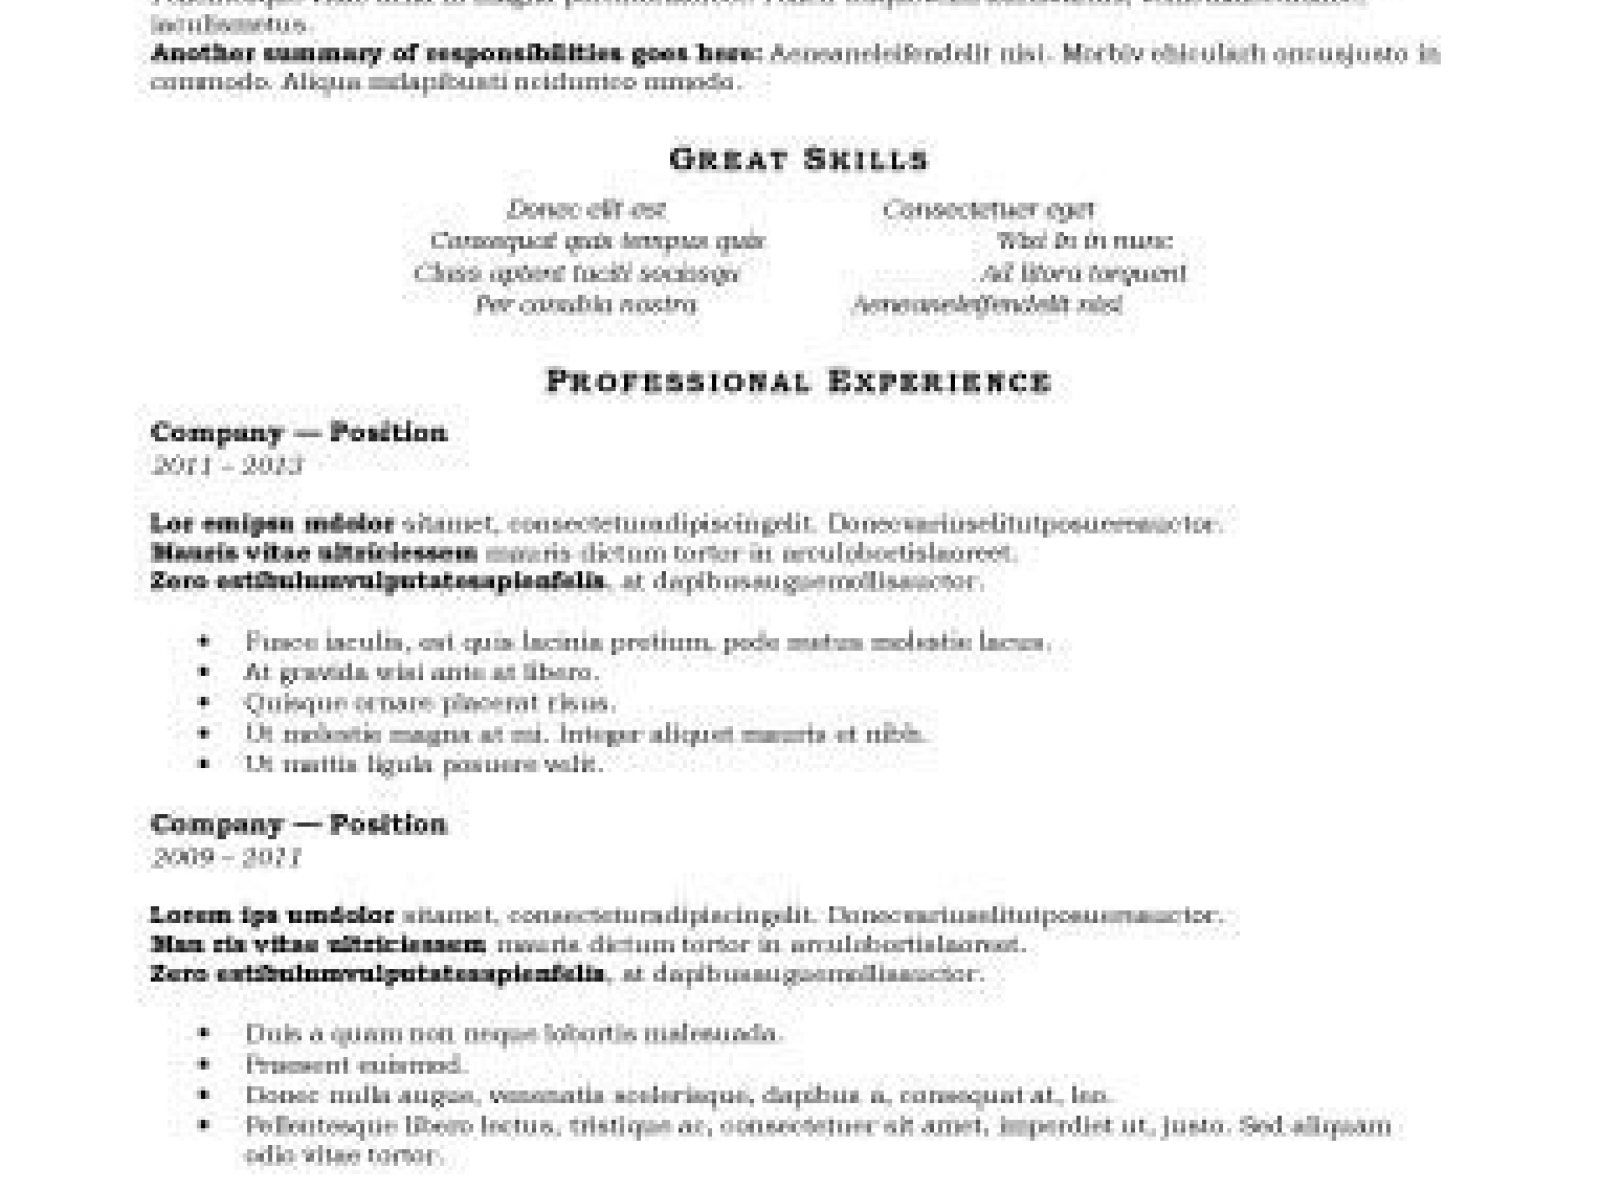 Free Resume Format Downloads Cover Letter For Electronics Technician Positionresume Samples Cv .